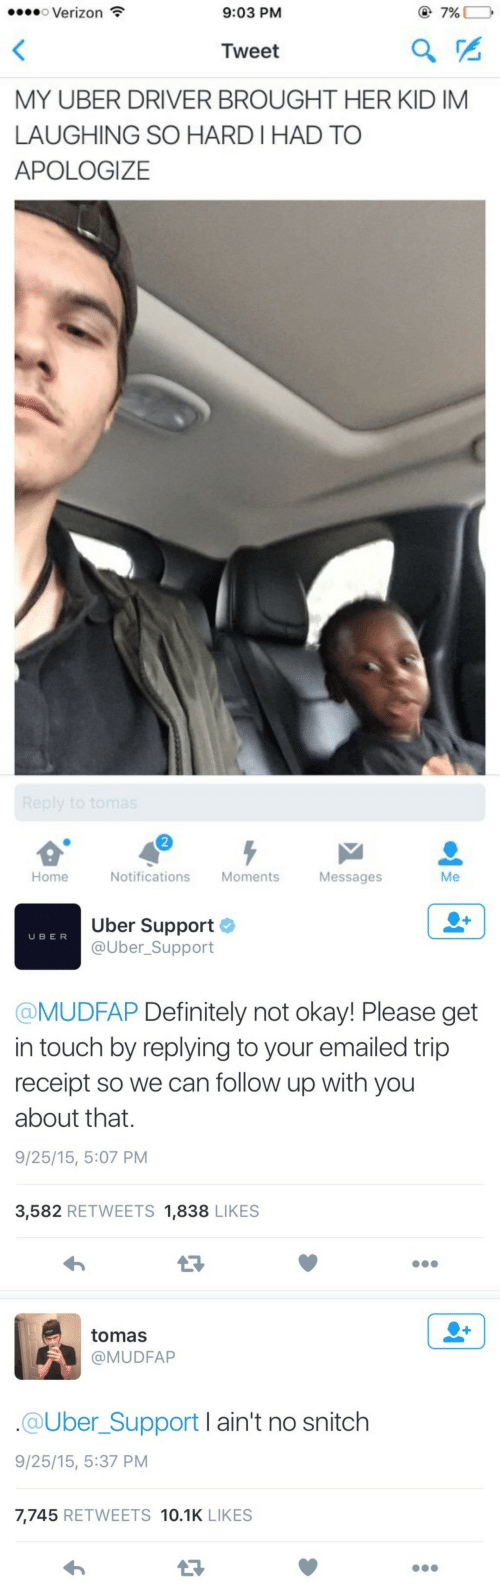 No Snitch: o Verizon  9:03 PM  @7%  Tweet  MY UBER DRIVER BROUGHT HER KID IM  LAUGHING SO HARD I HAD TO  APOLOGIZE  2  Home  Notifications Moments  Messages  Me   Uber Support  @Uber_Support  U BER  @MUDFAP Definitely not okay! Please get  in touch by replying to your emailed trip  receipt so we can follow up with you  about that.  9/25/15, 5:07 PM  3,582 RETWEETS 1,838 LIKES   tomas  @MUDFAP  @Uber_Support I ain't no snitch  9/25/15, 5:37 PM  7,745 RETWEETS 10.1K LIKES  13